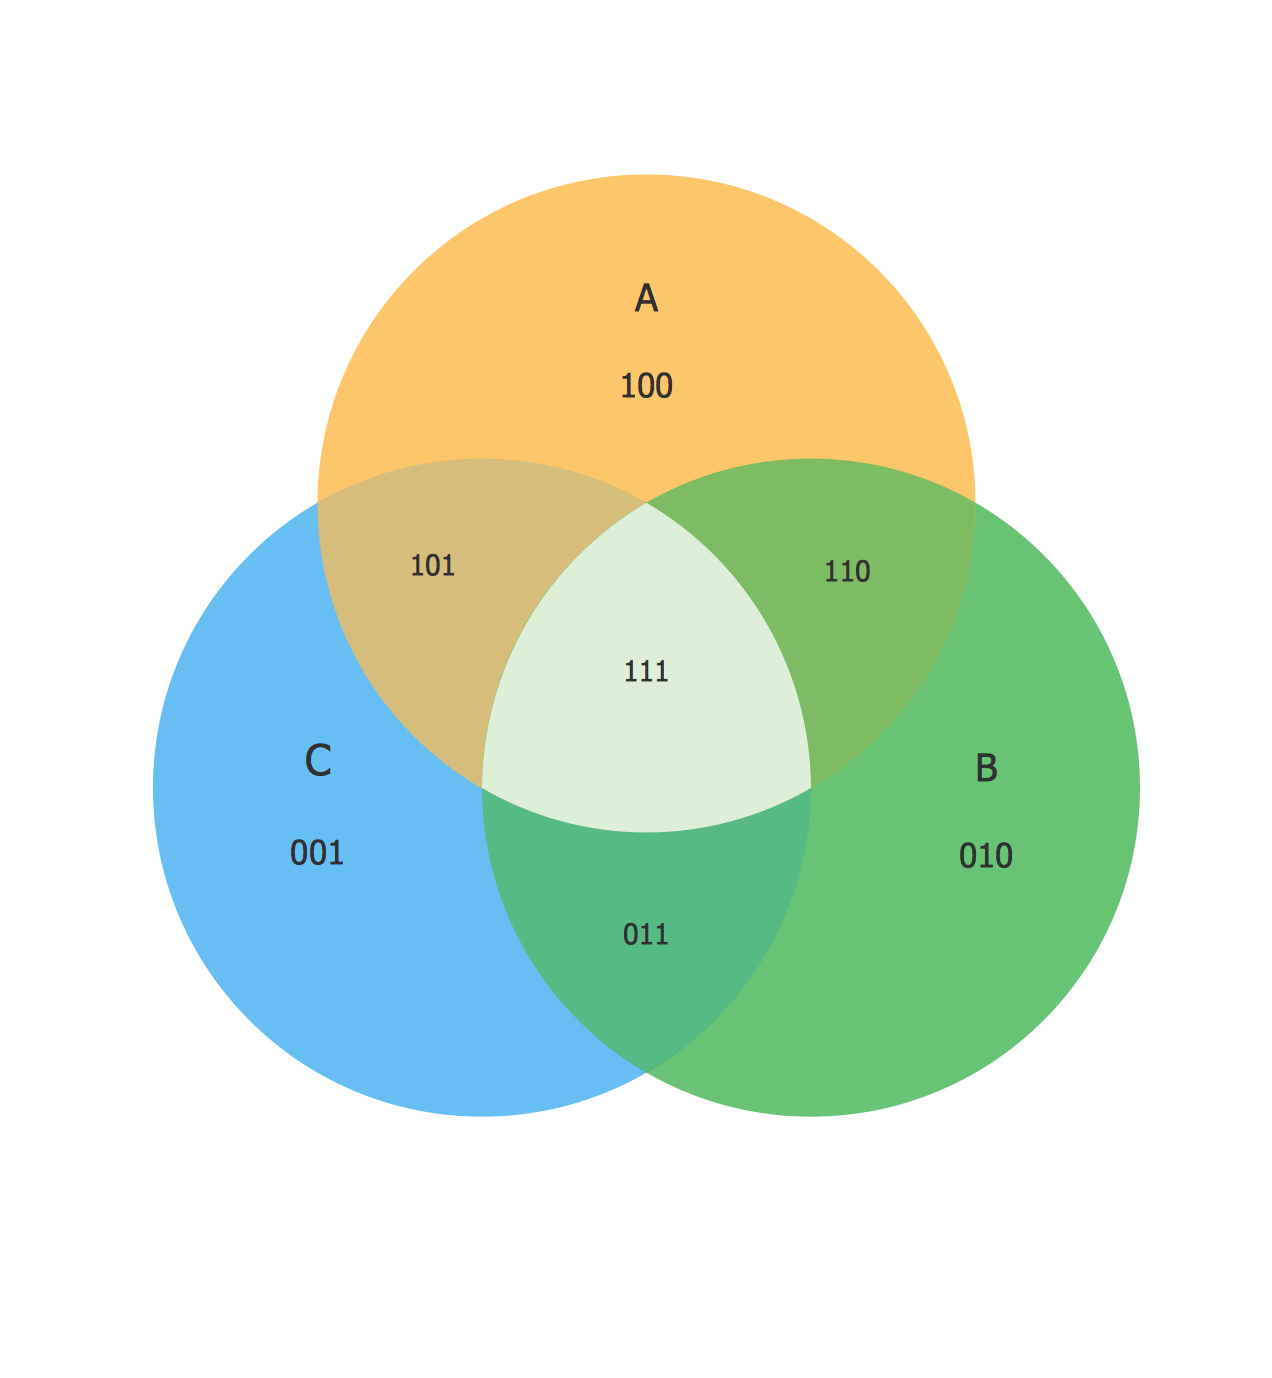 Venn diagram examples for logic problem solving venn diagram as a venn diagram problem solving example 3 sets ccuart Images